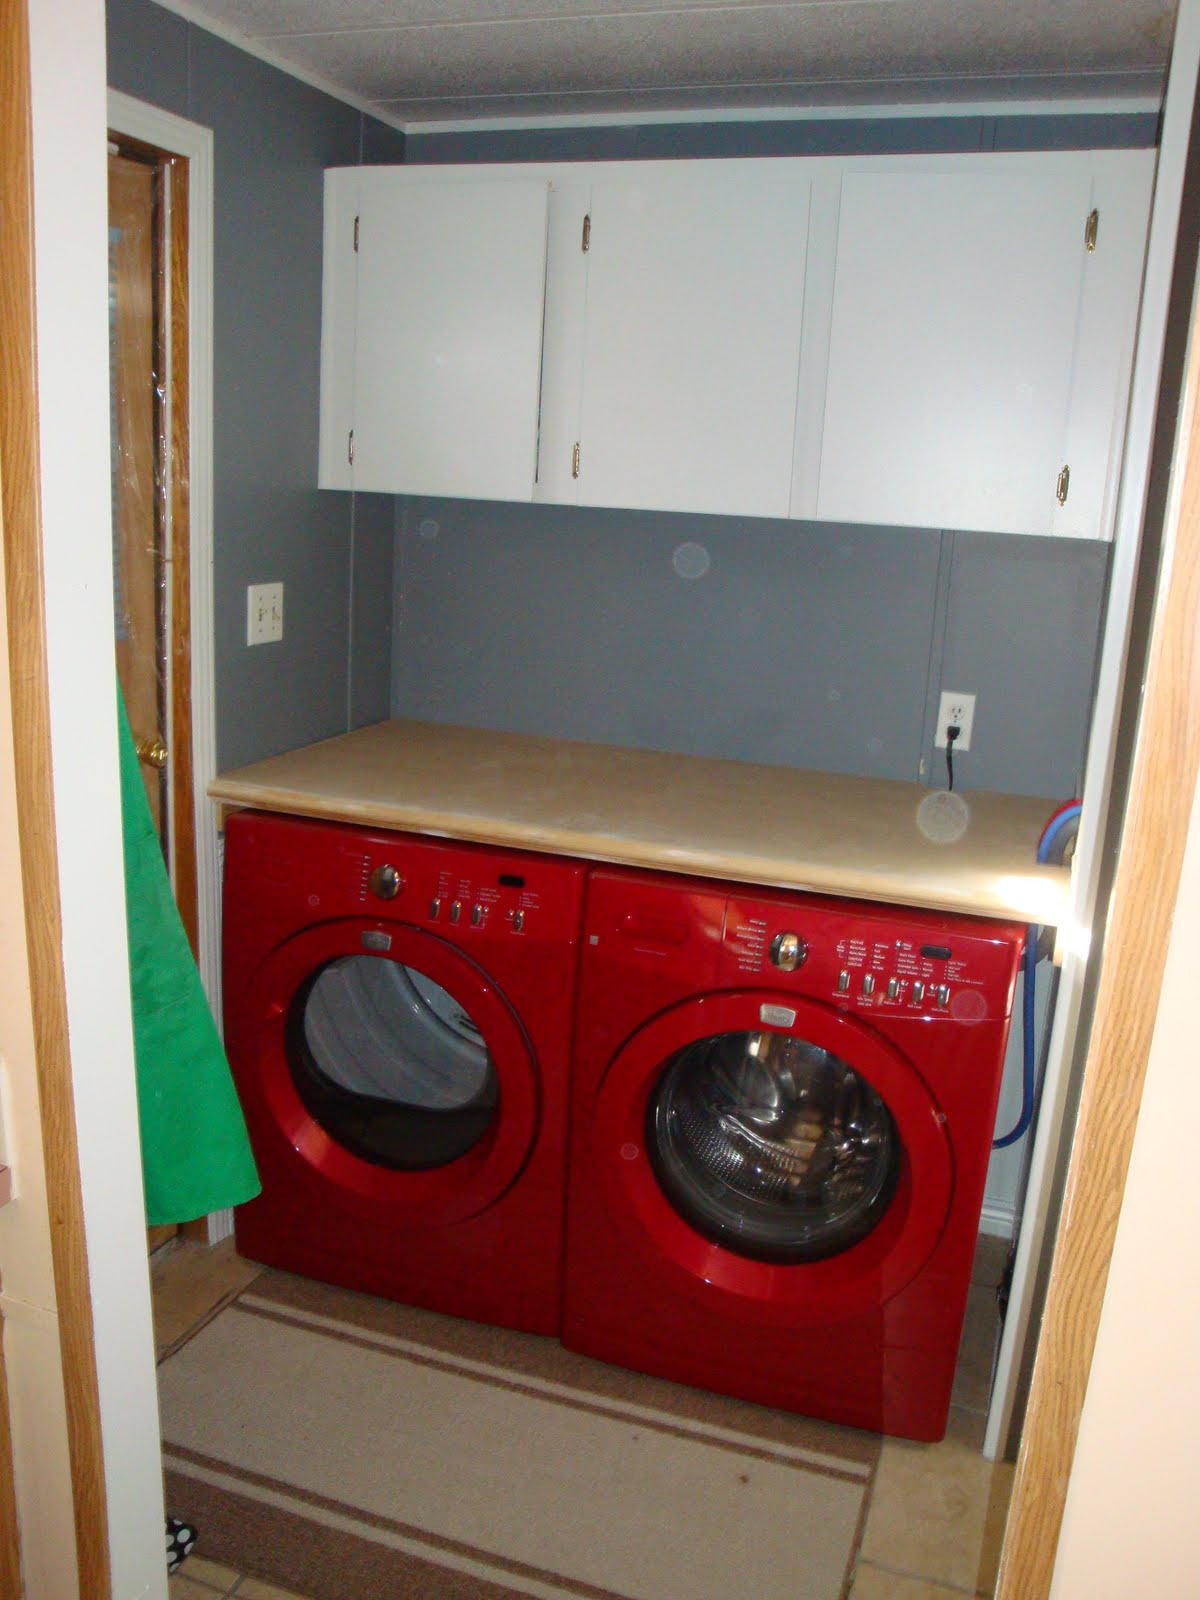 storage work space in the laundry room which has been really great